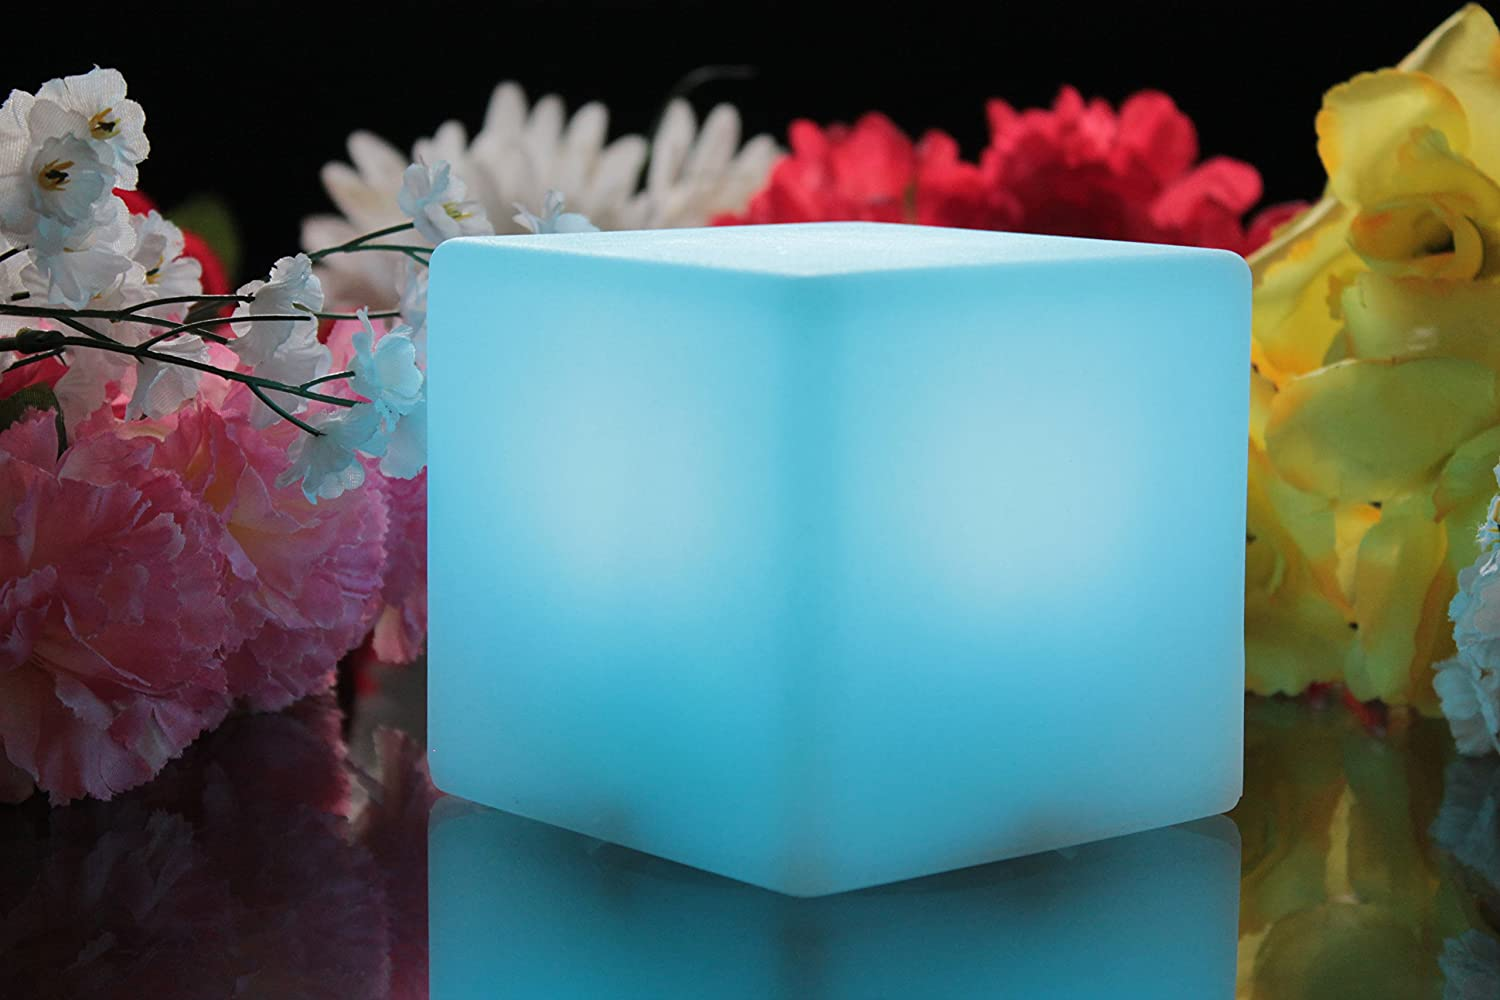 Com buy 10cm cube decorative battery operated rgb led table lamps - Mood Cube Night Lamp Colour Changing 10cm Battery Glow Cube Led Light Sensory Toy For Kids Adults Bedroom By Pk Green Amazon Co Uk Kitchen Home